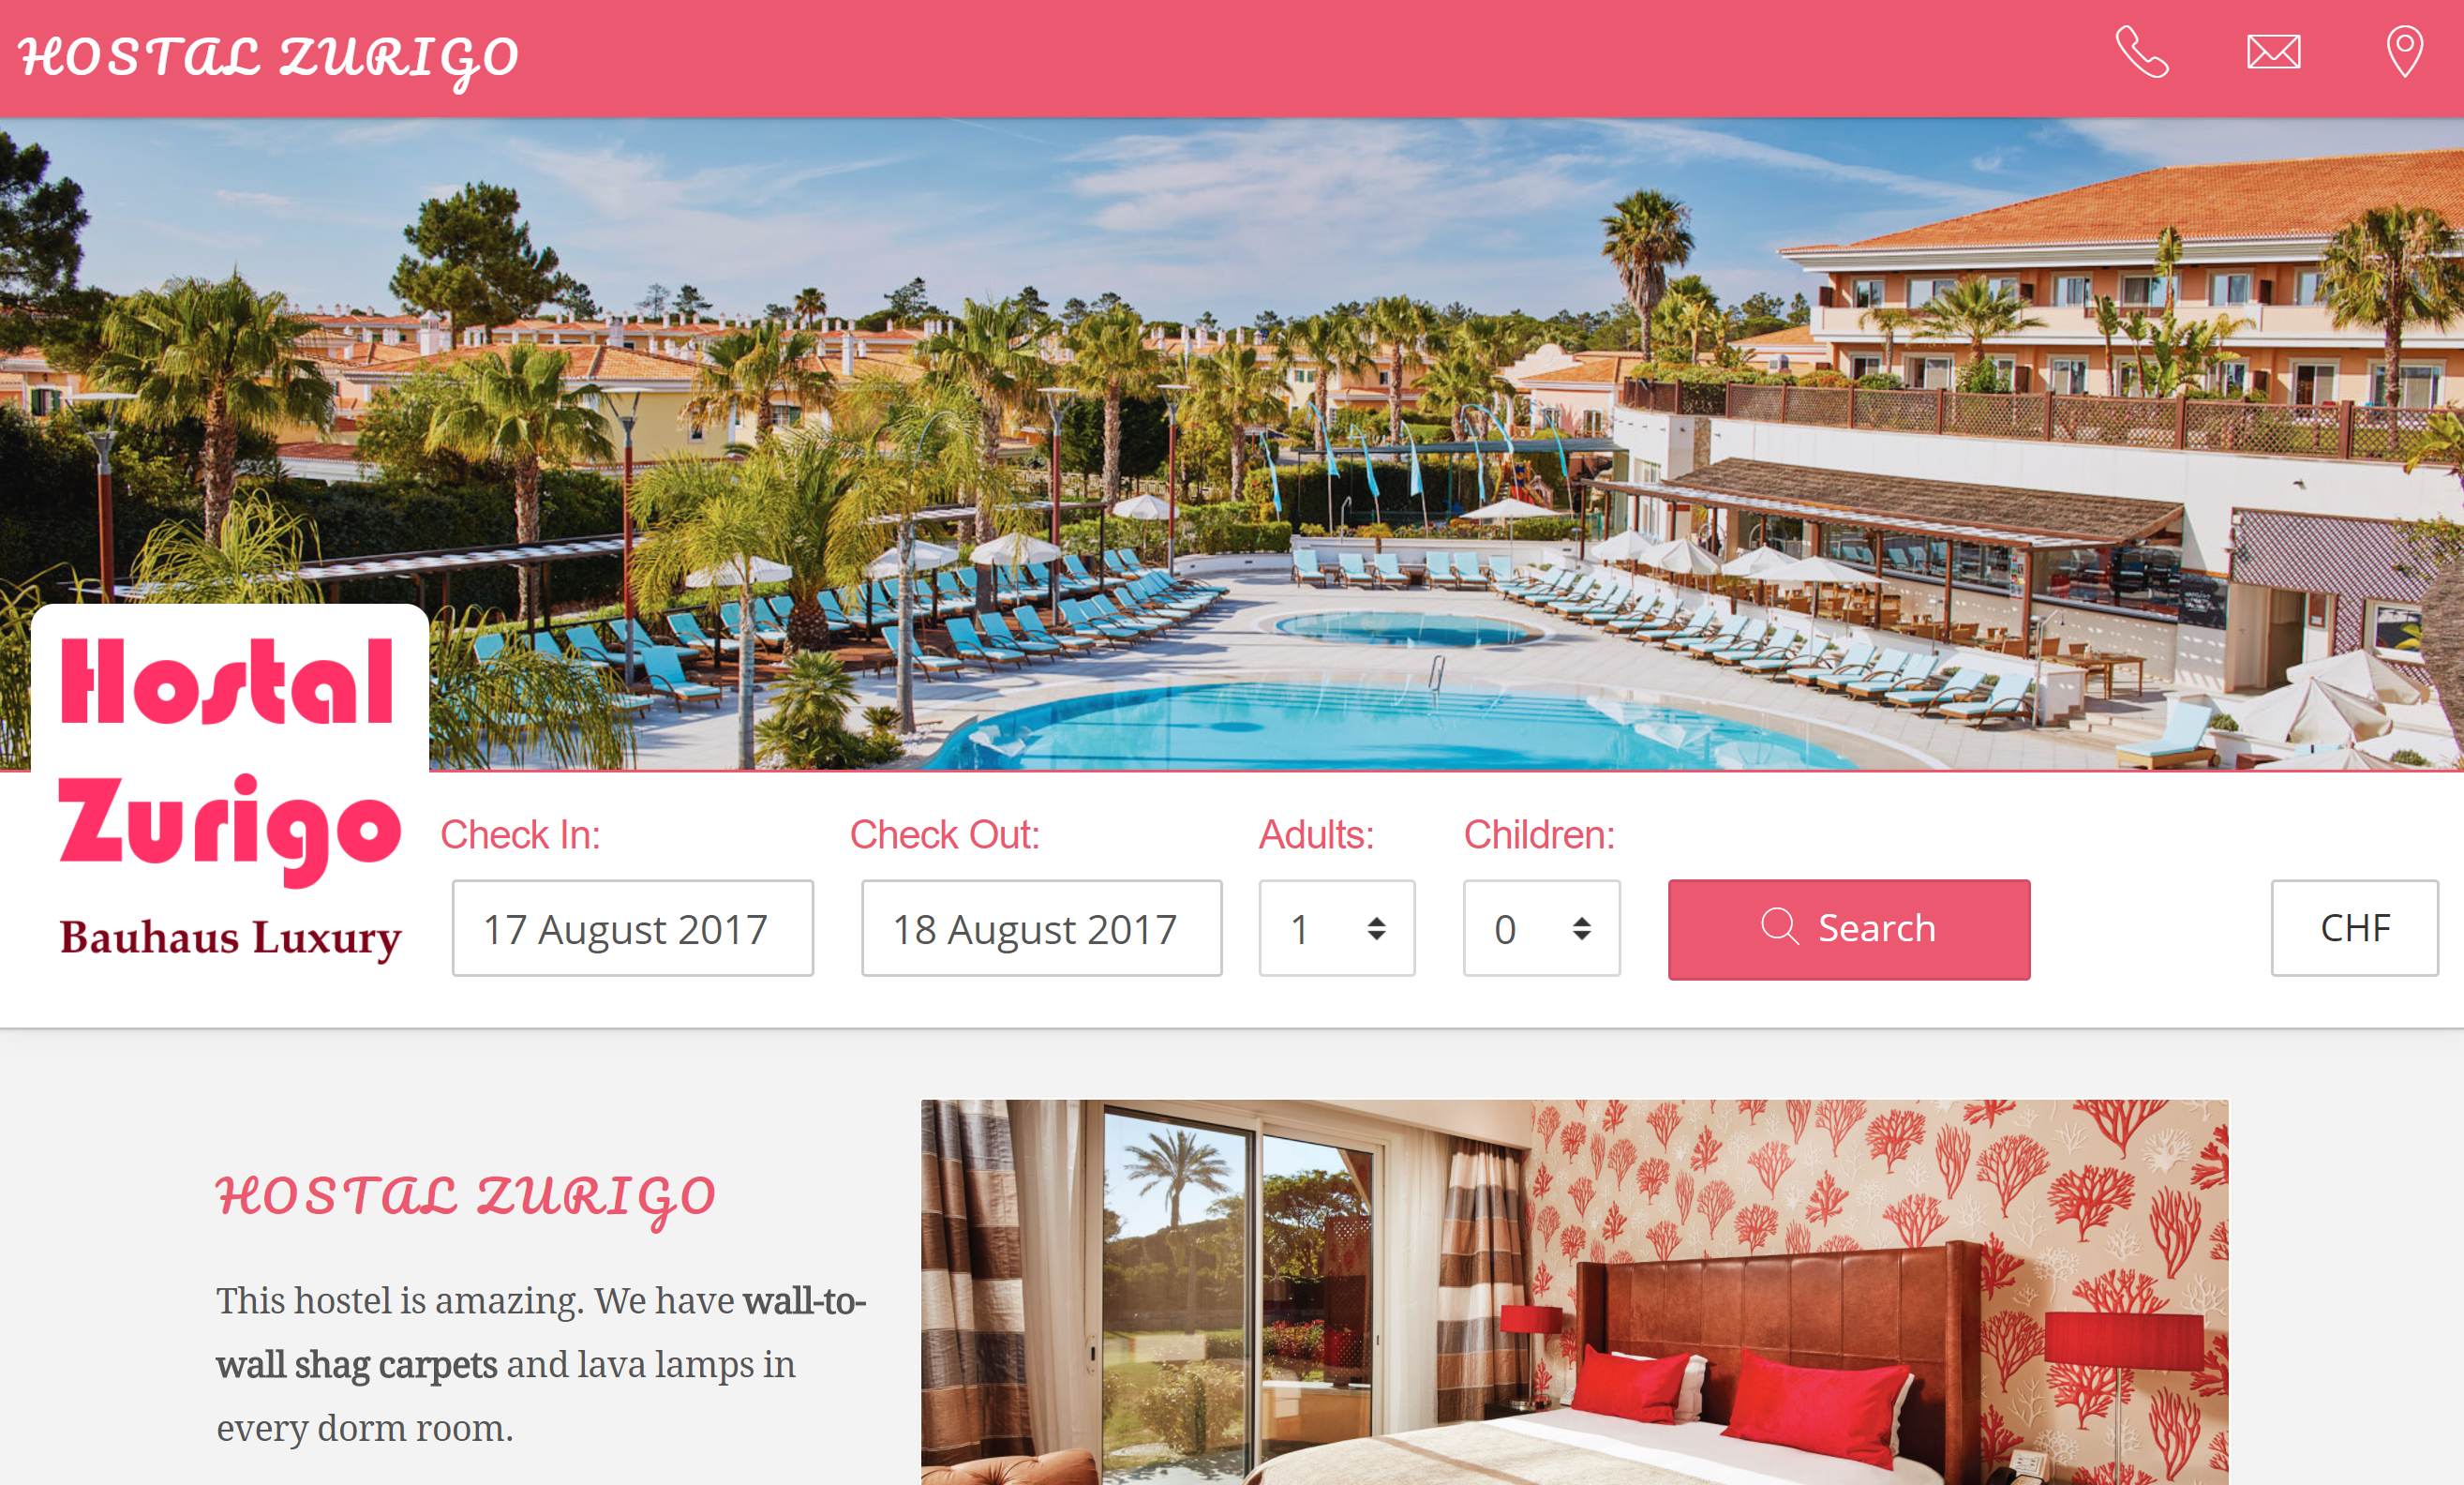 Booking Engine Style Updates The booking engine has been updated to allow further customization, along with a revamped Cosmo theme. To explore what's new, go to Channel Manager > My Booking Engine in the left navigation menu